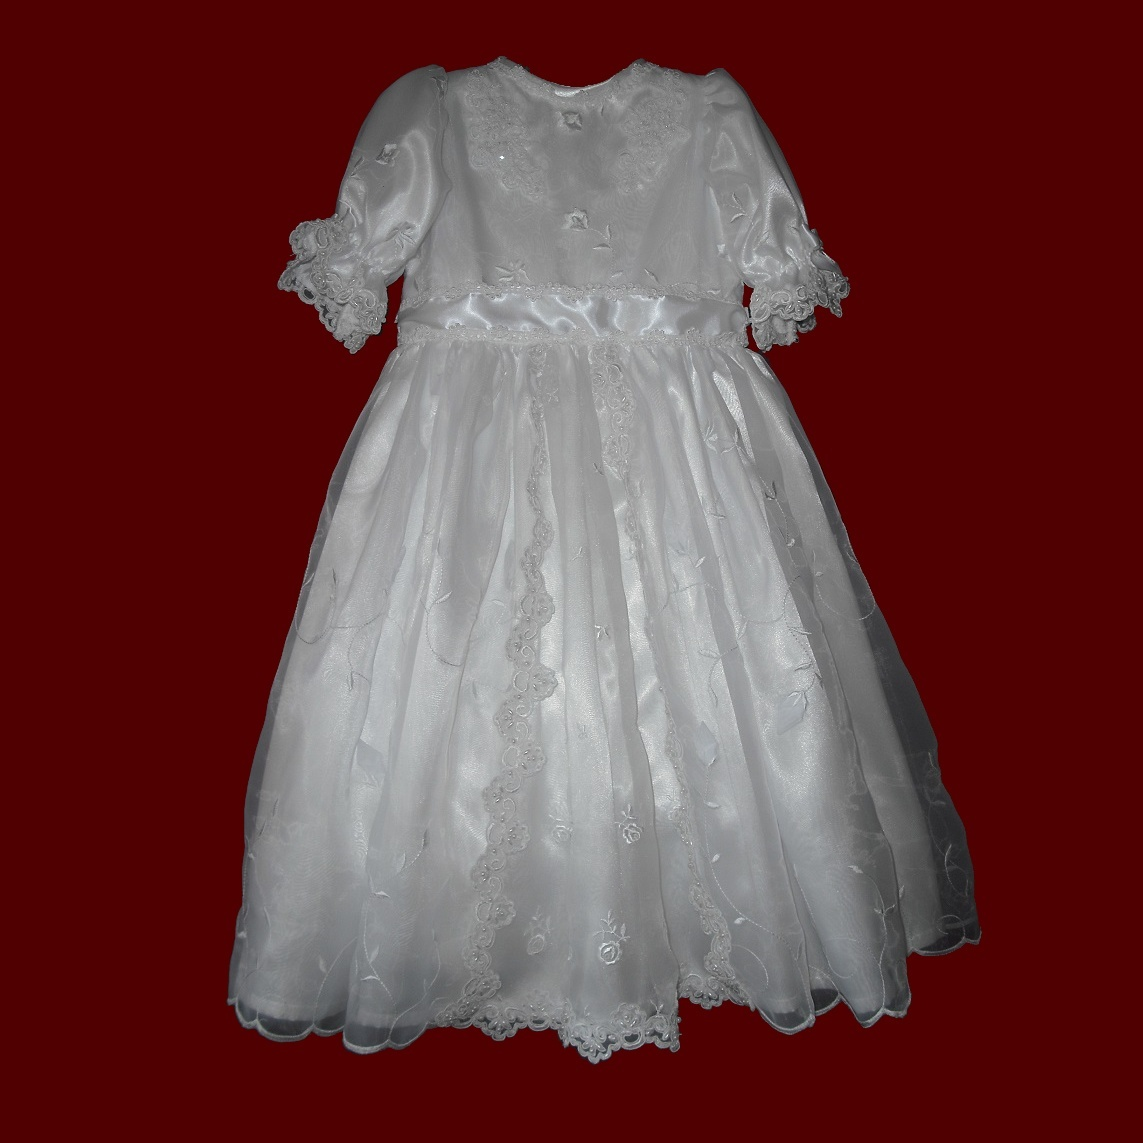 Rosebud Embroidered Organza with Floral Inset & Beaded Lace Communion Dress